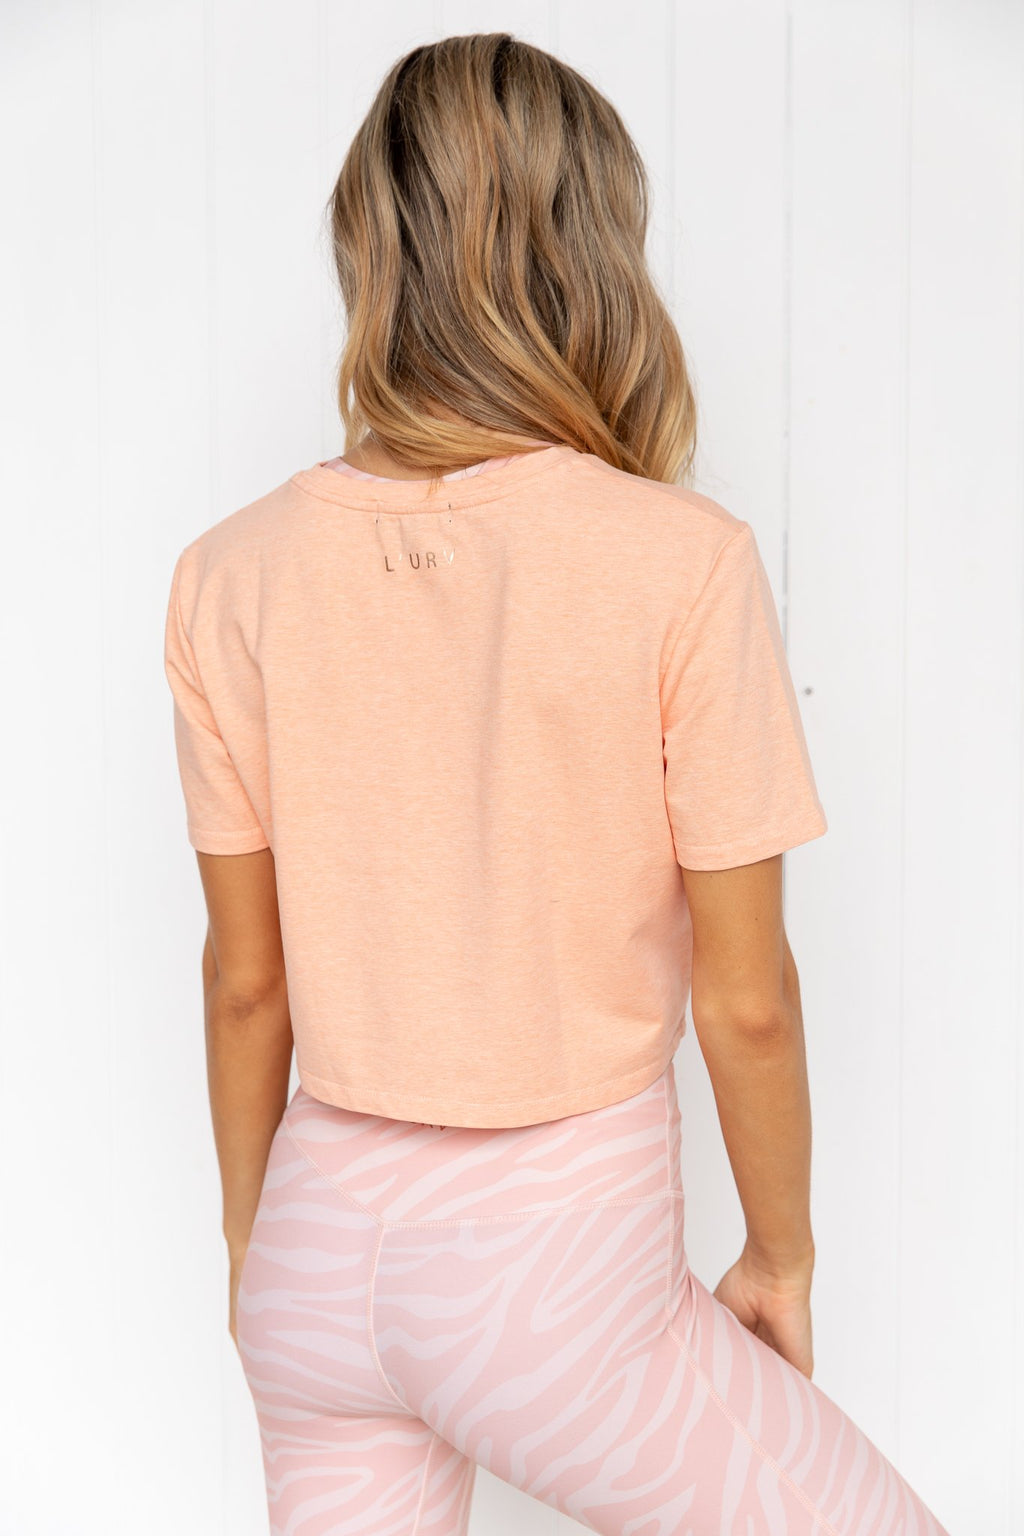 Game Changer Tee - Apricot - PURE DASH